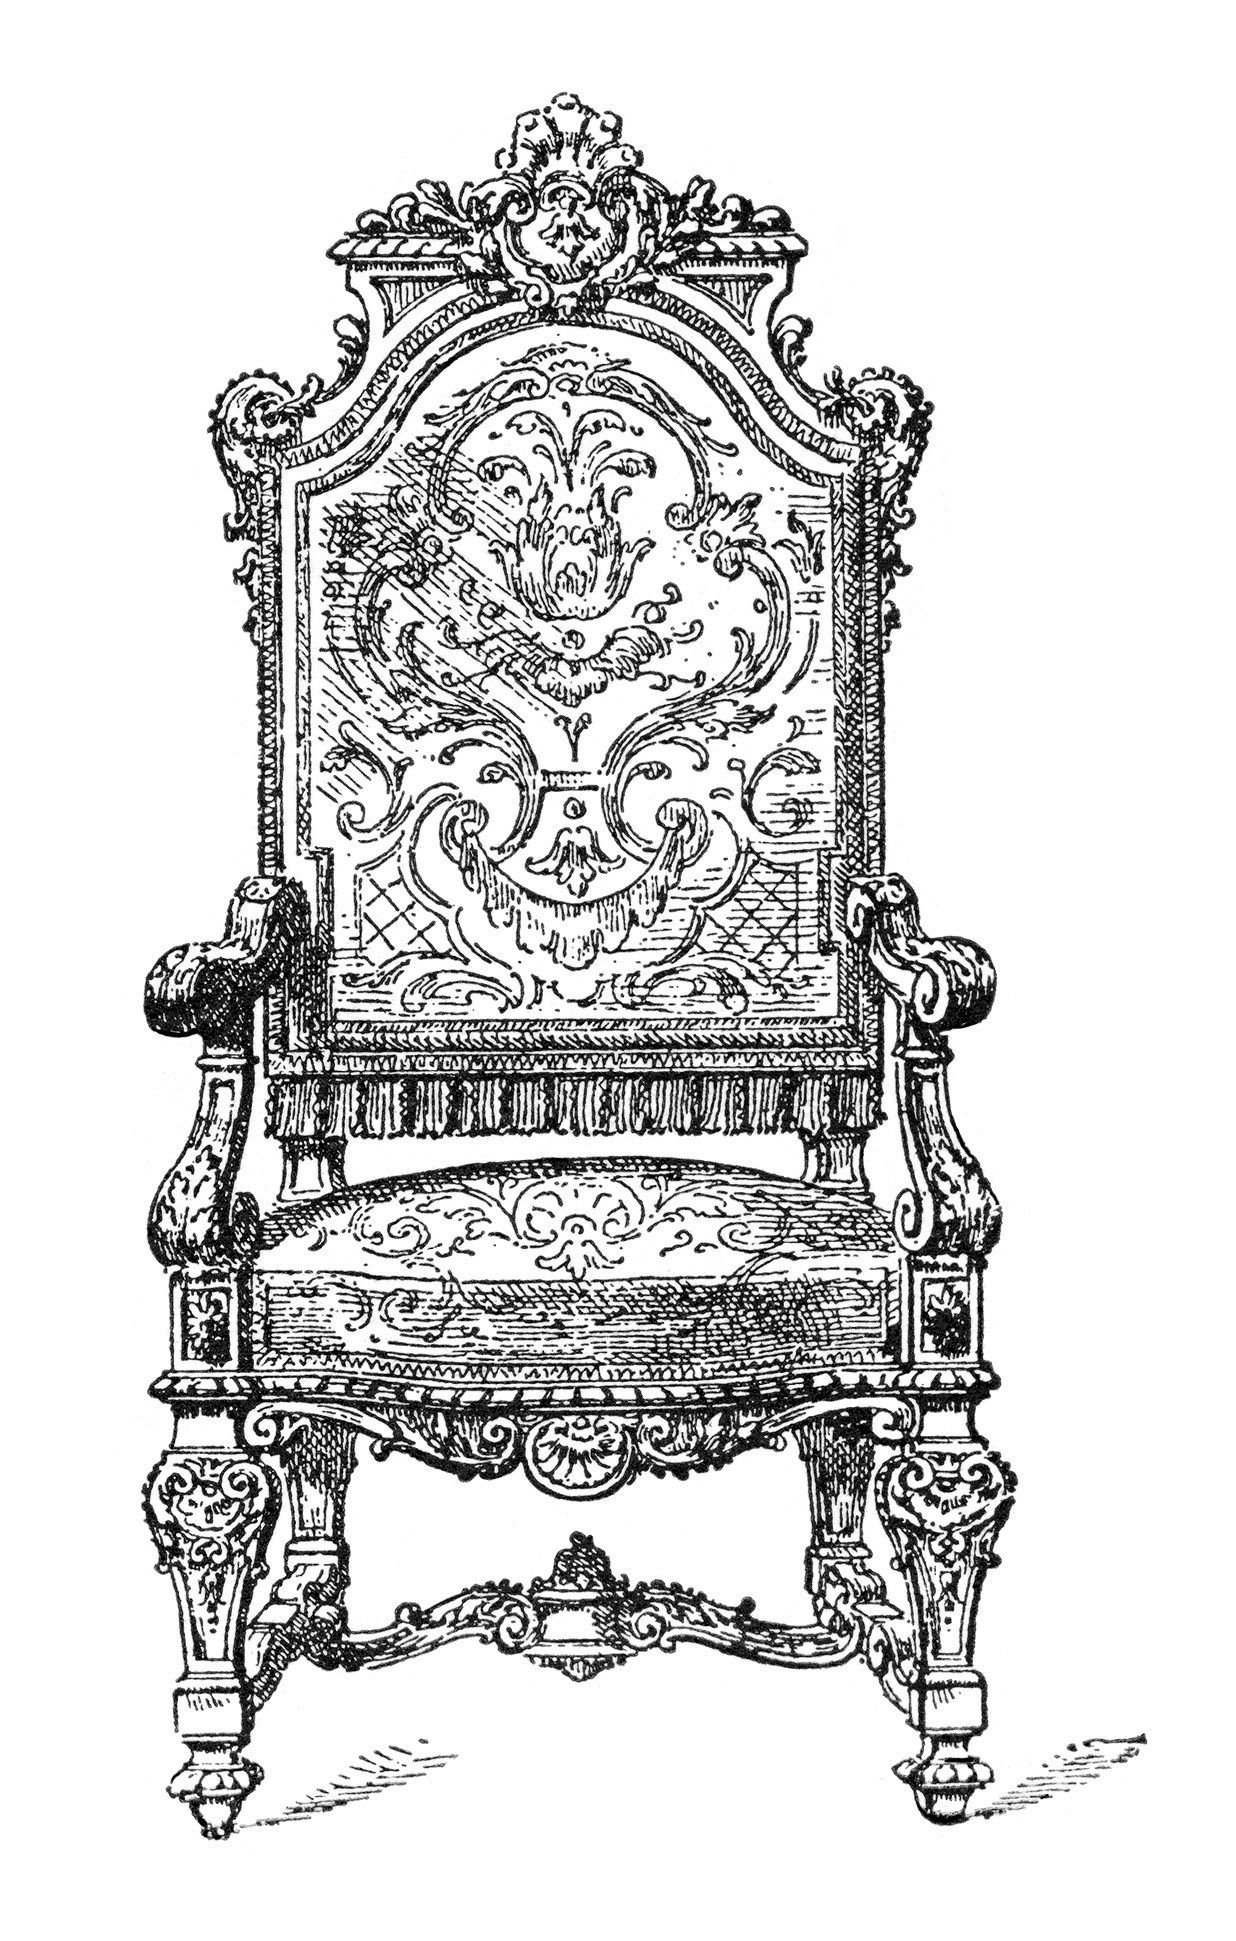 Olddesignshop Ornatechair Jpg 1236 1941 Ornate Chairs Clip Art Vintage Vintage Images